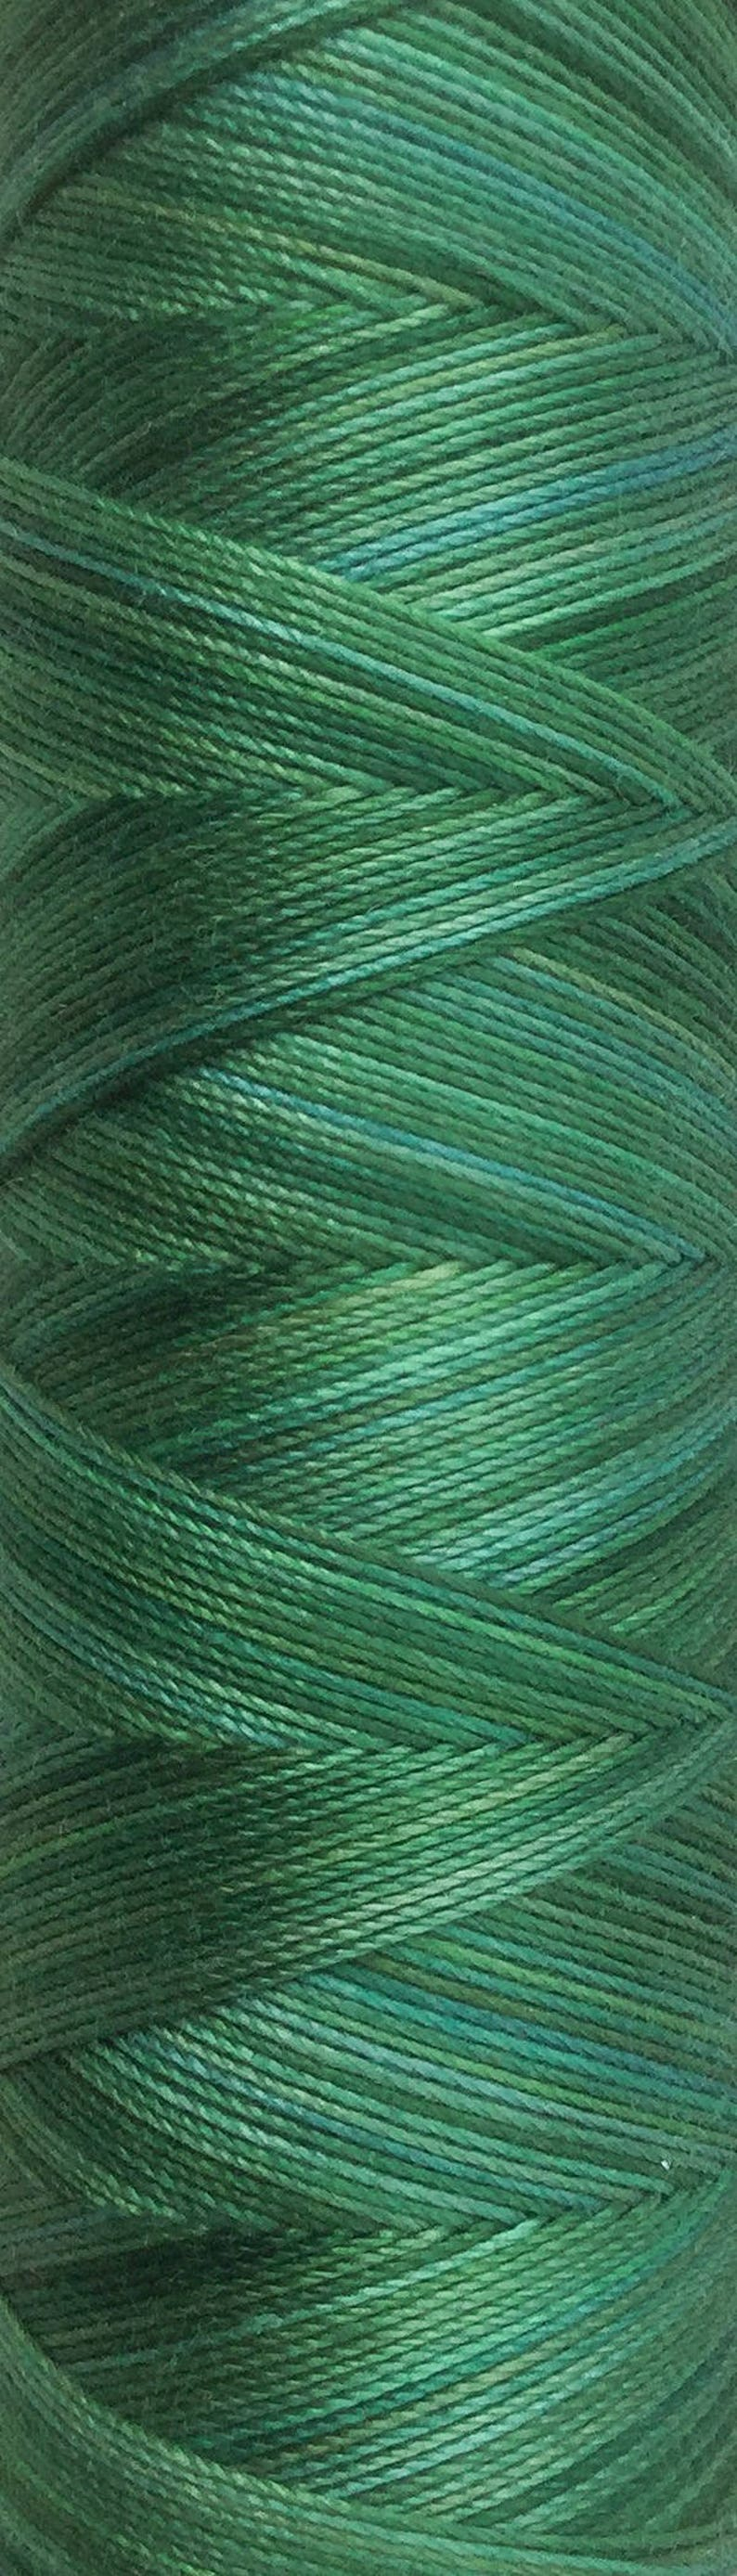 No.55 Holly Hand Dyed Cotton Machine Thread Individual Spool image 0